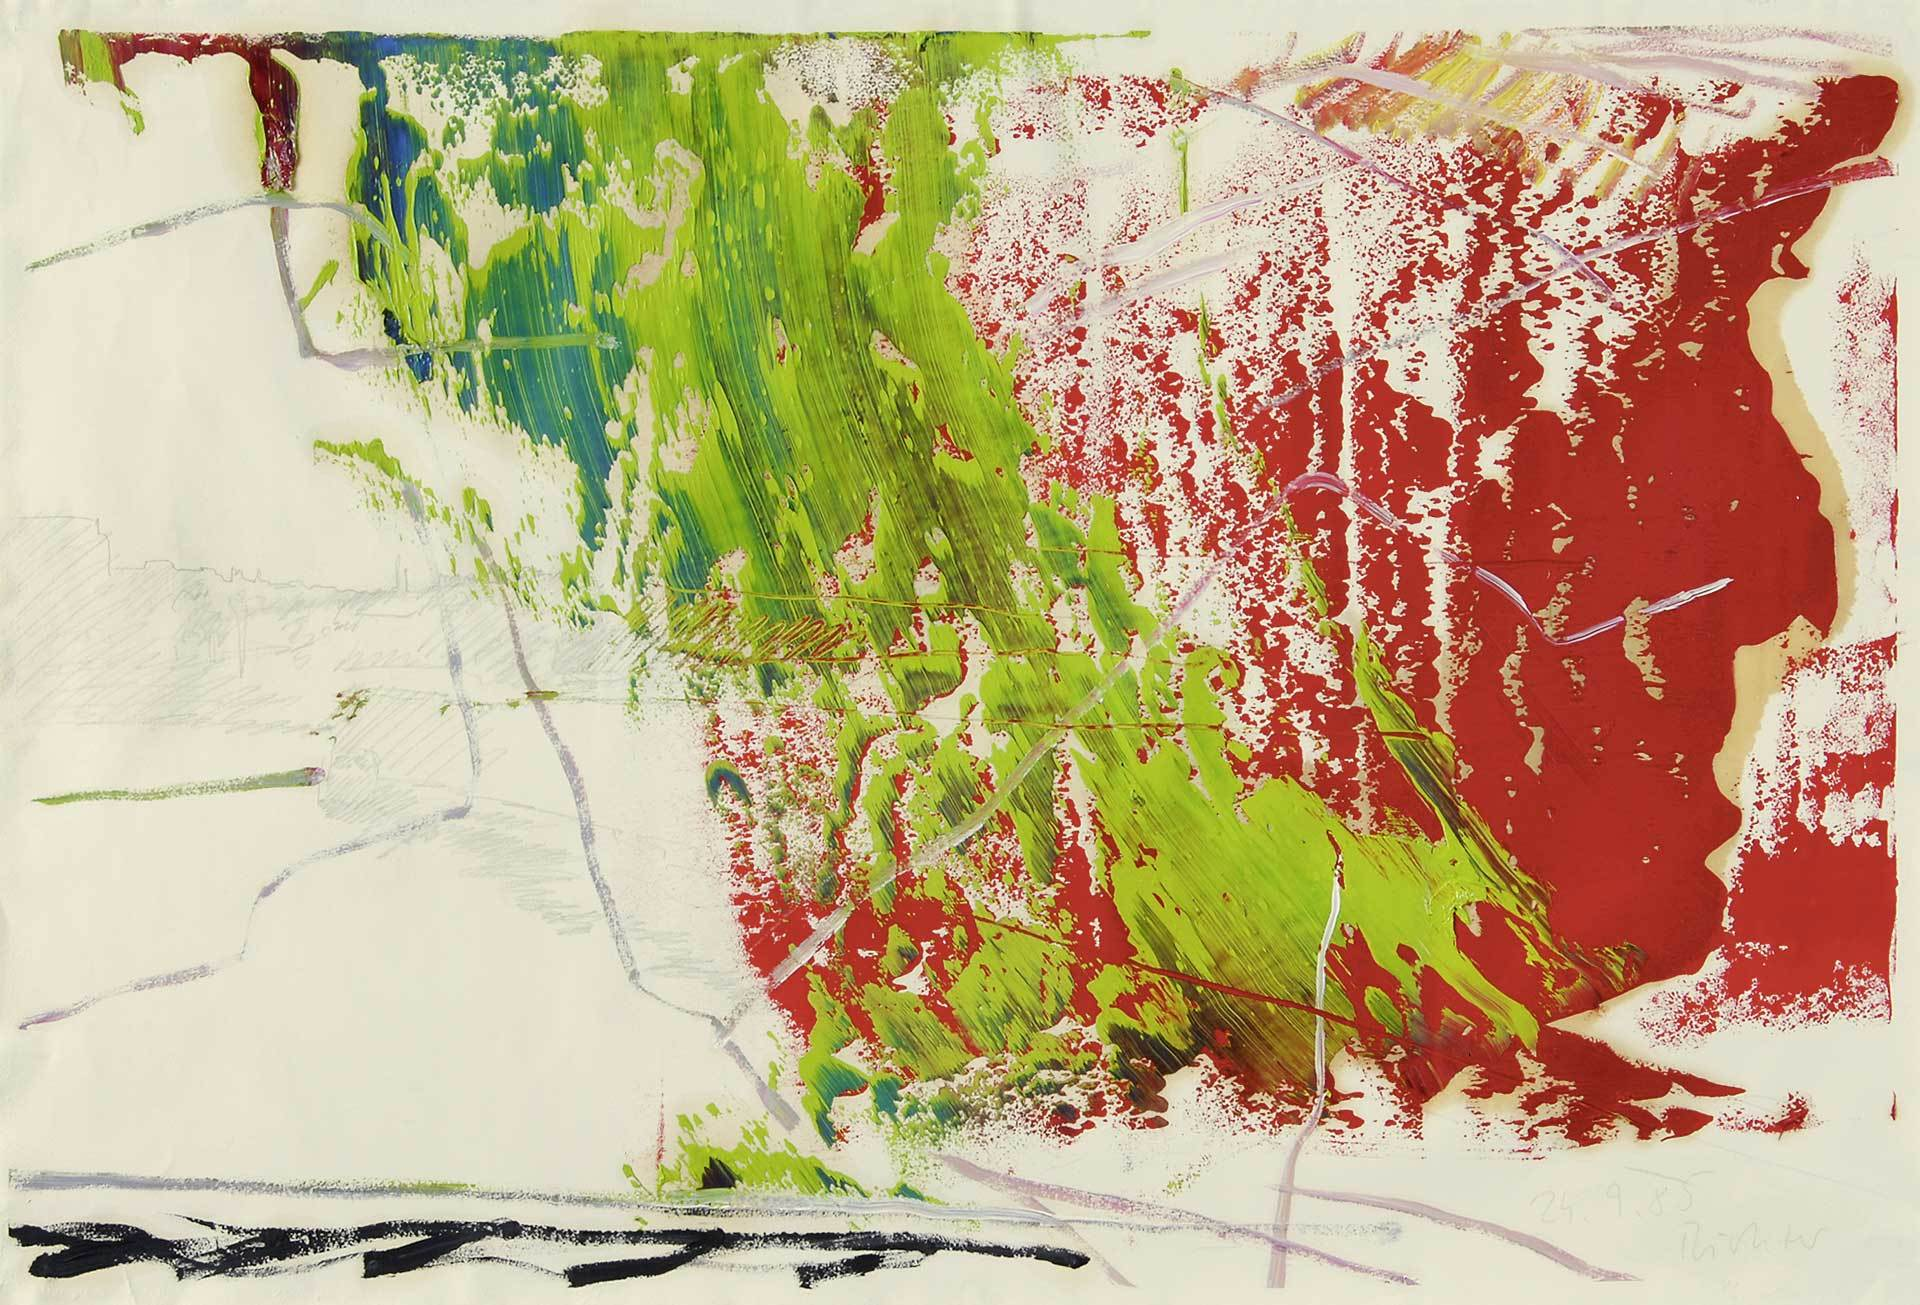 Richter Gerhard, Untitled, 24.9.85